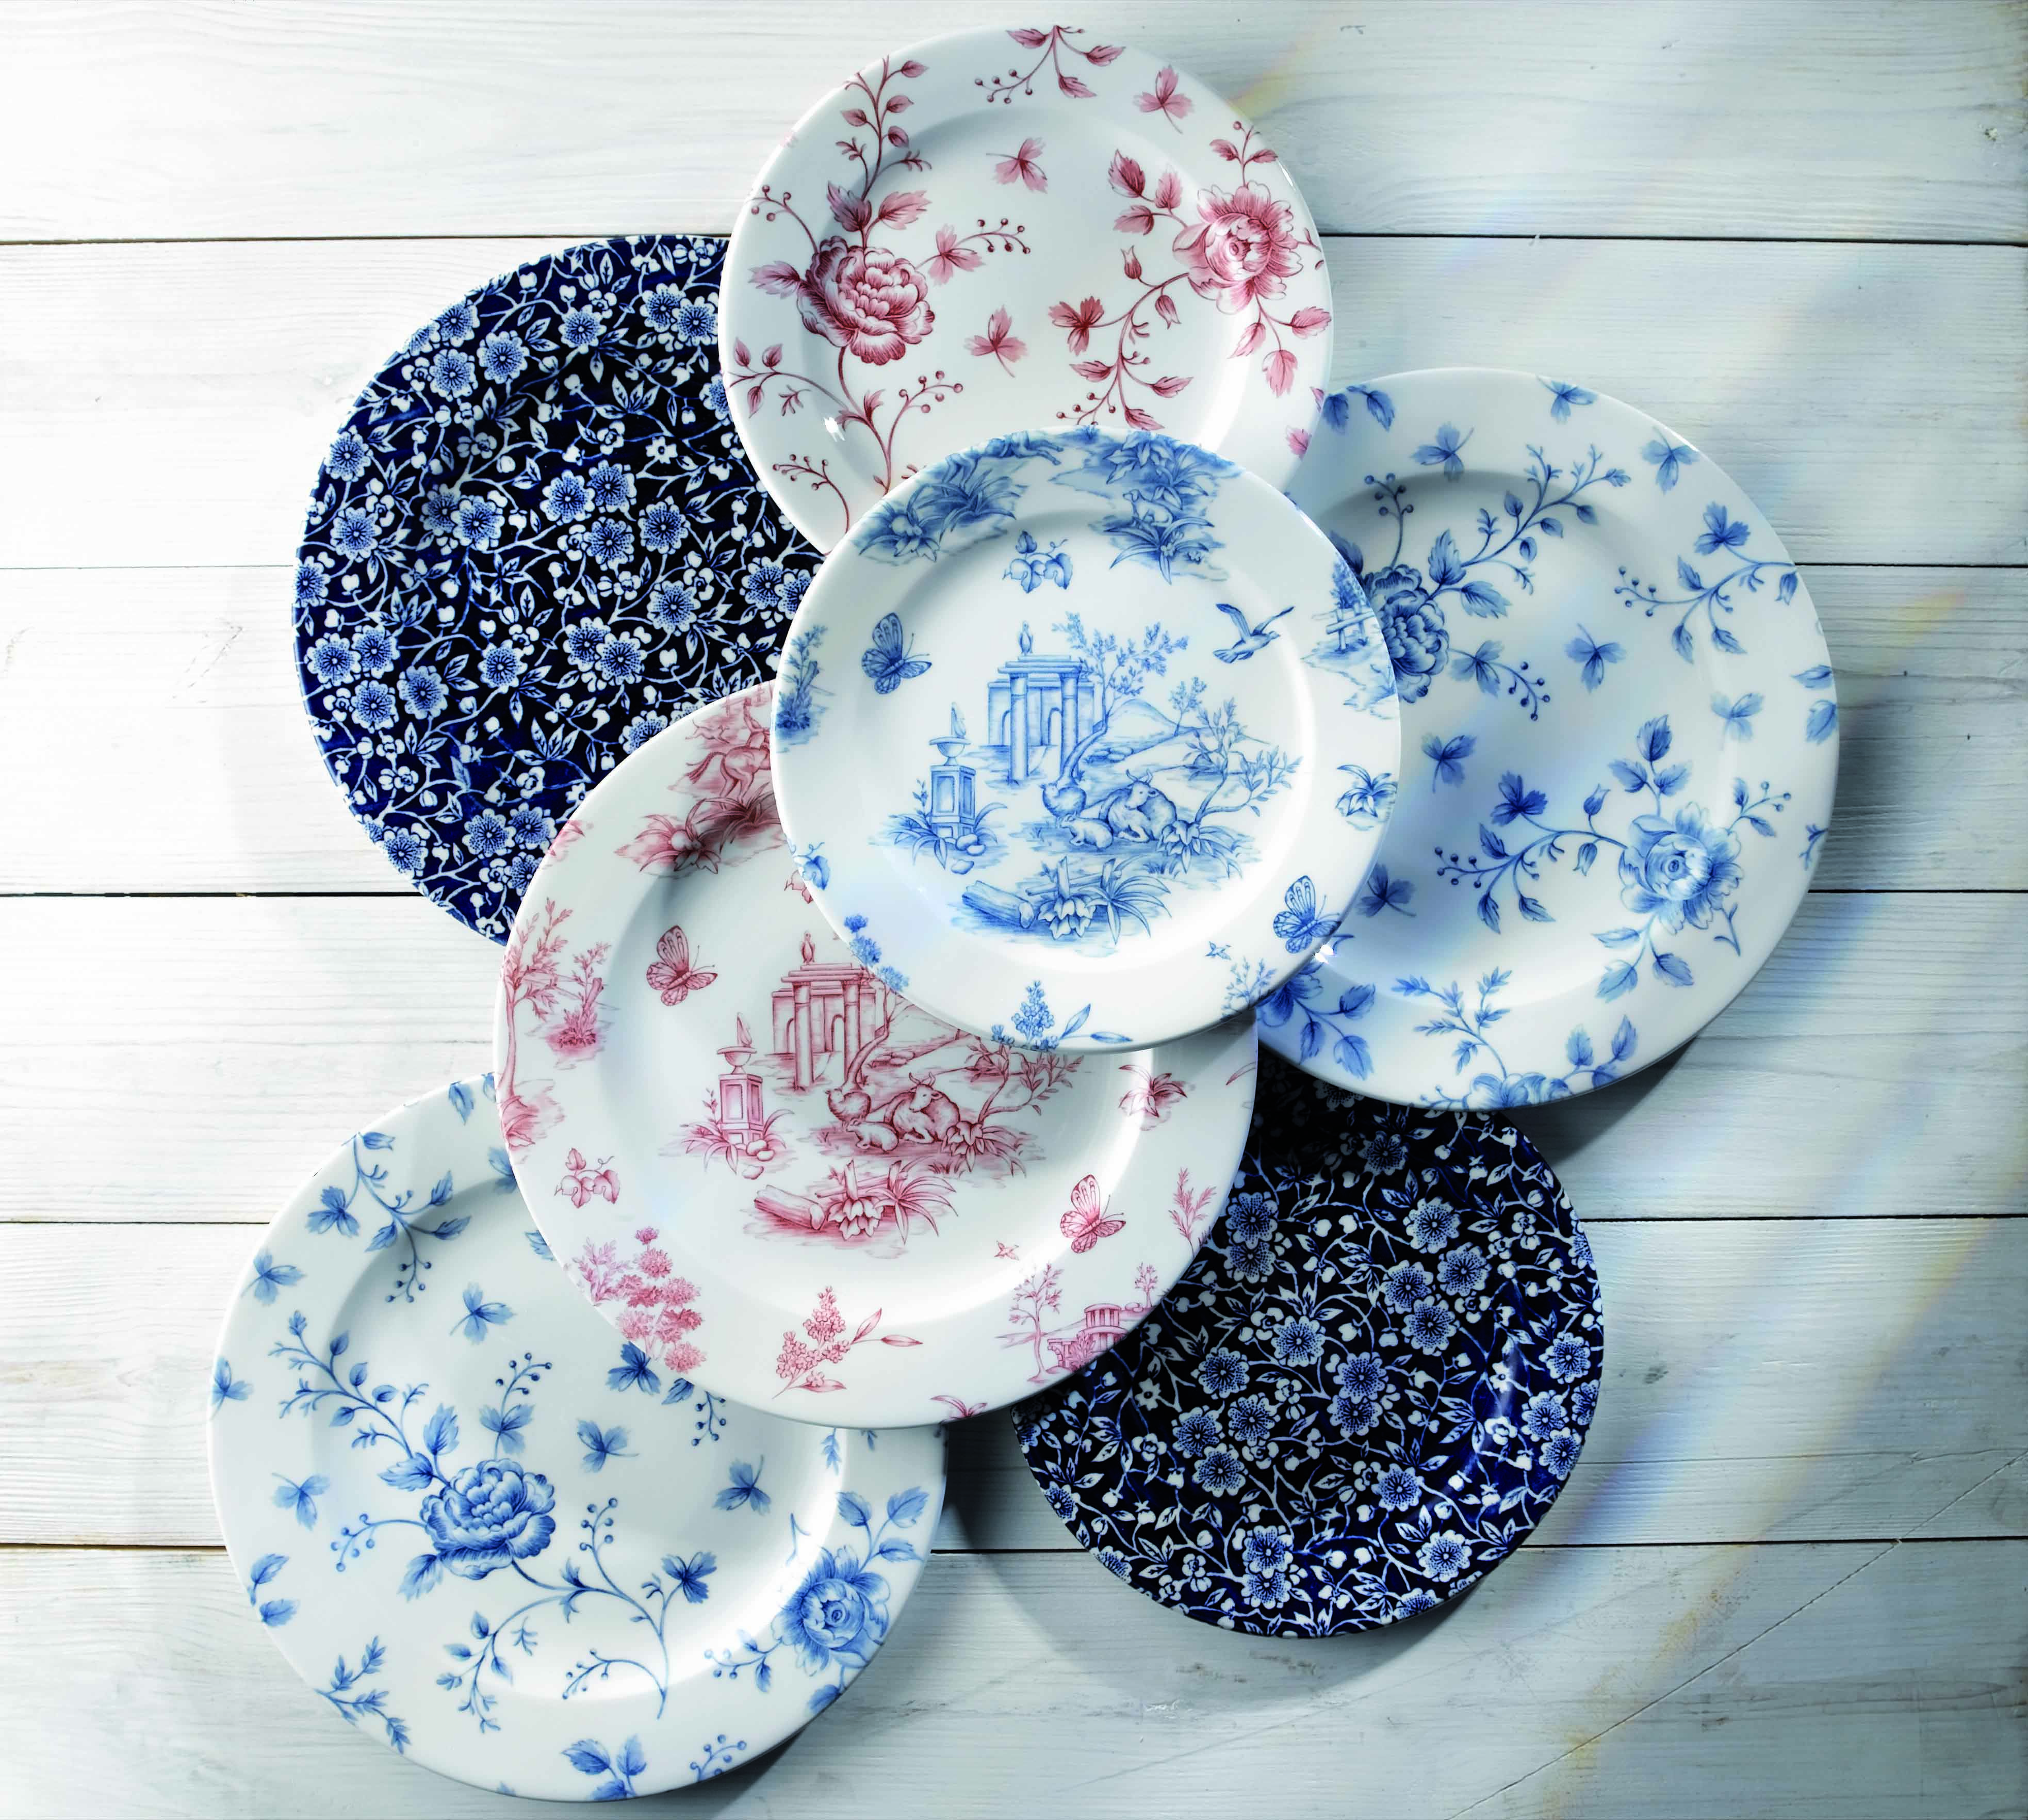 Churchill Plates By Smart Hospitality Flower Patterns And Floral Designs Are What The Calico Vintage Ranges Are All Vintage Prints Plates Vintage Floral Print